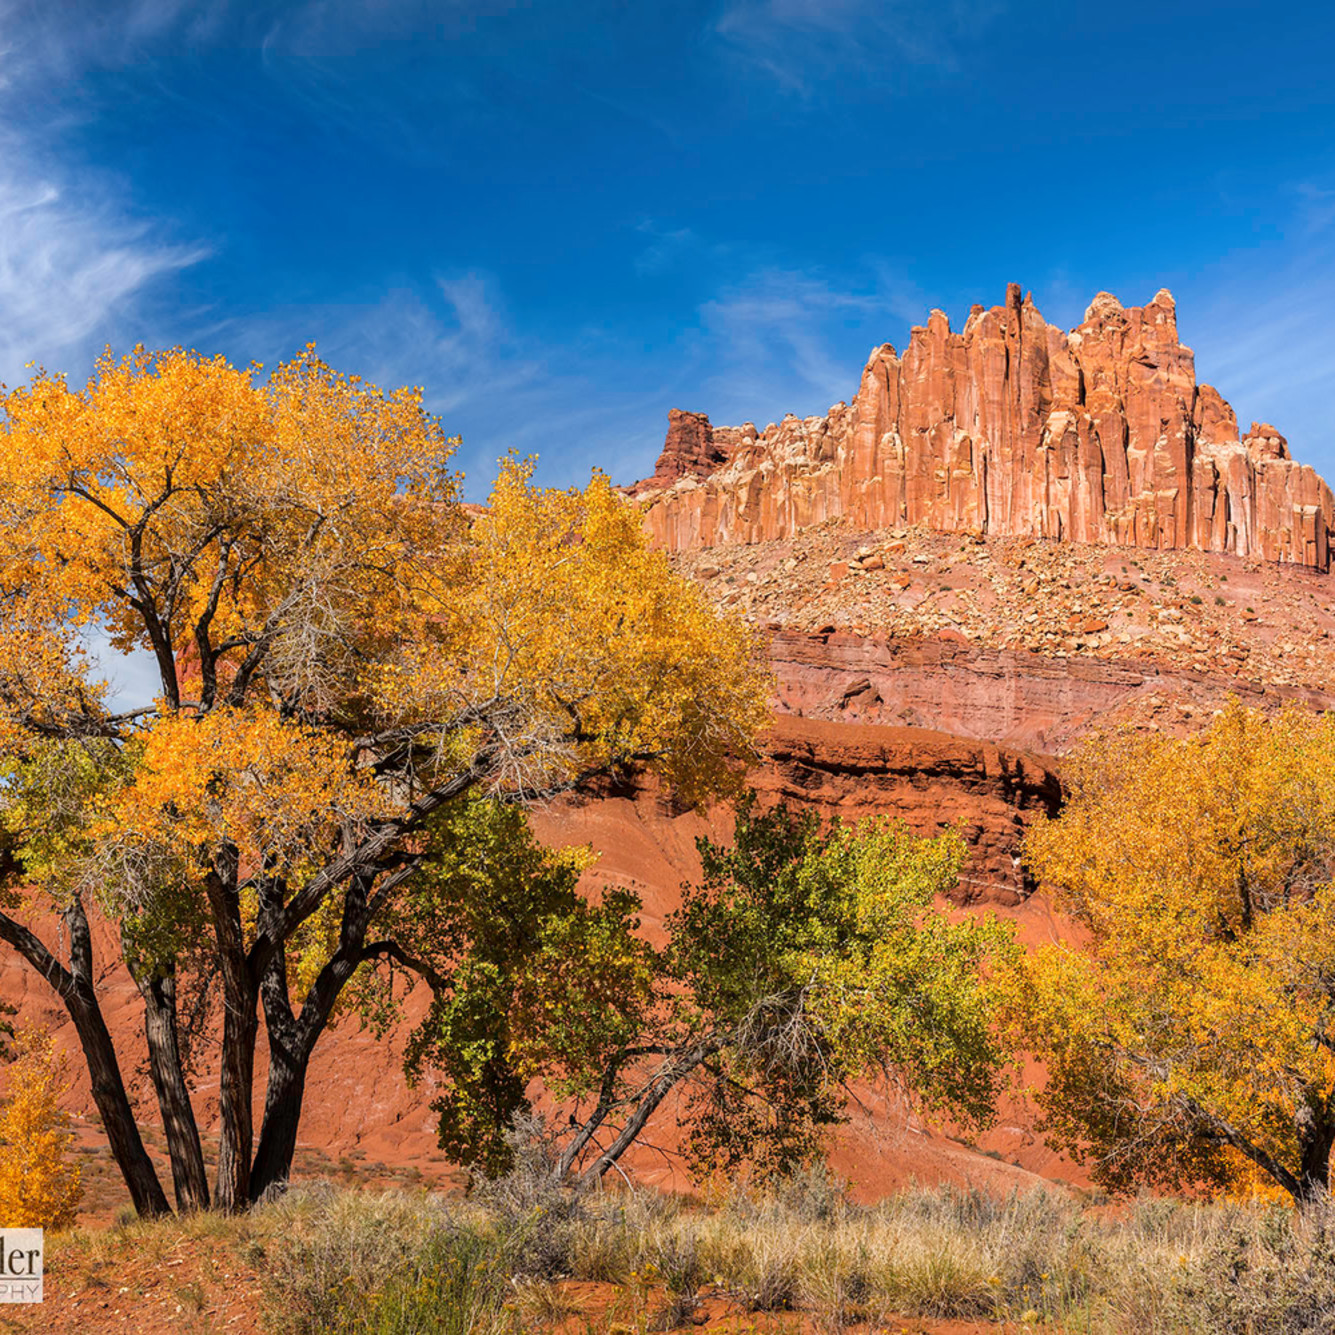 Asf 125ppi capitolreef np the castle fall cottonwoods watermarked jpg rhb3wh